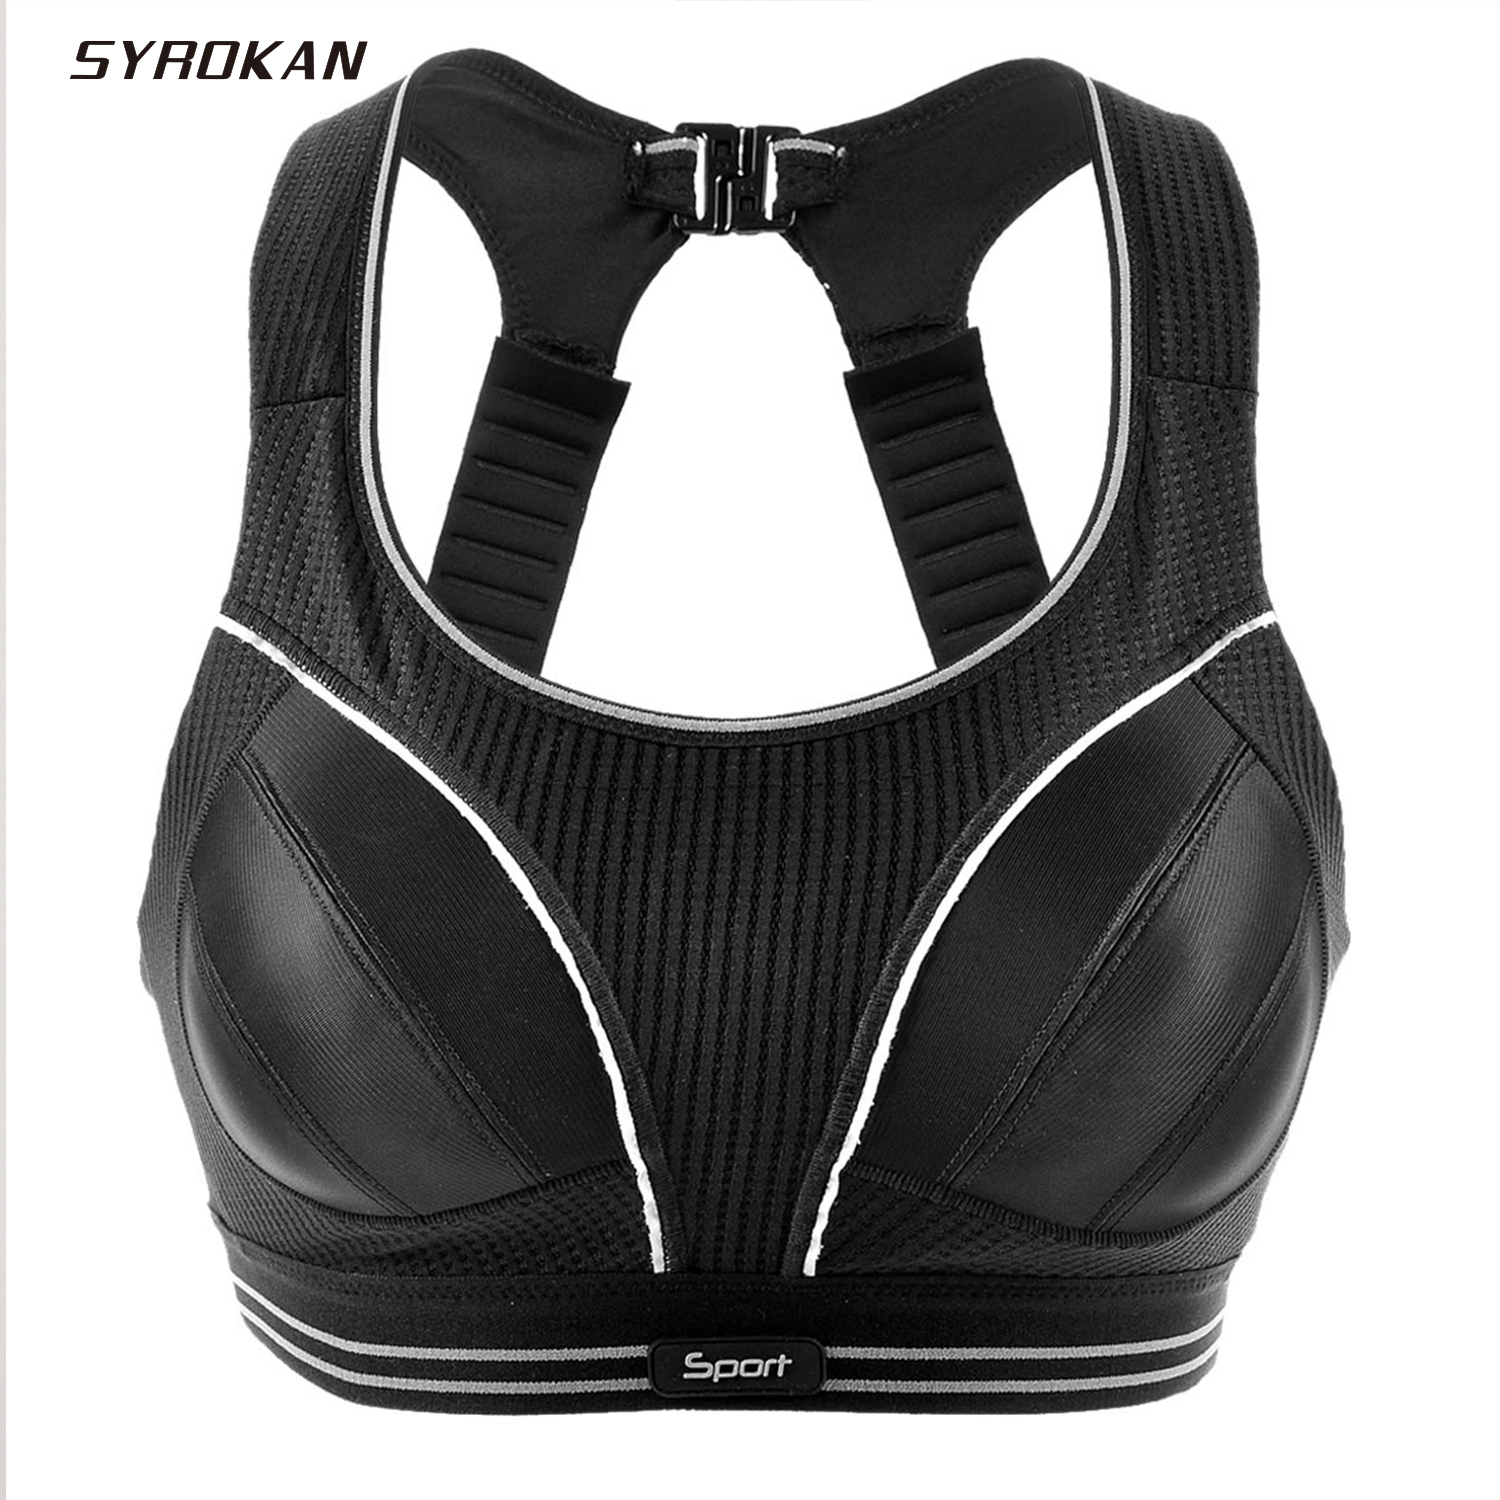 SYROKAN Women's Compression Racerback Adjustable High Impact Running Sports Bra Size